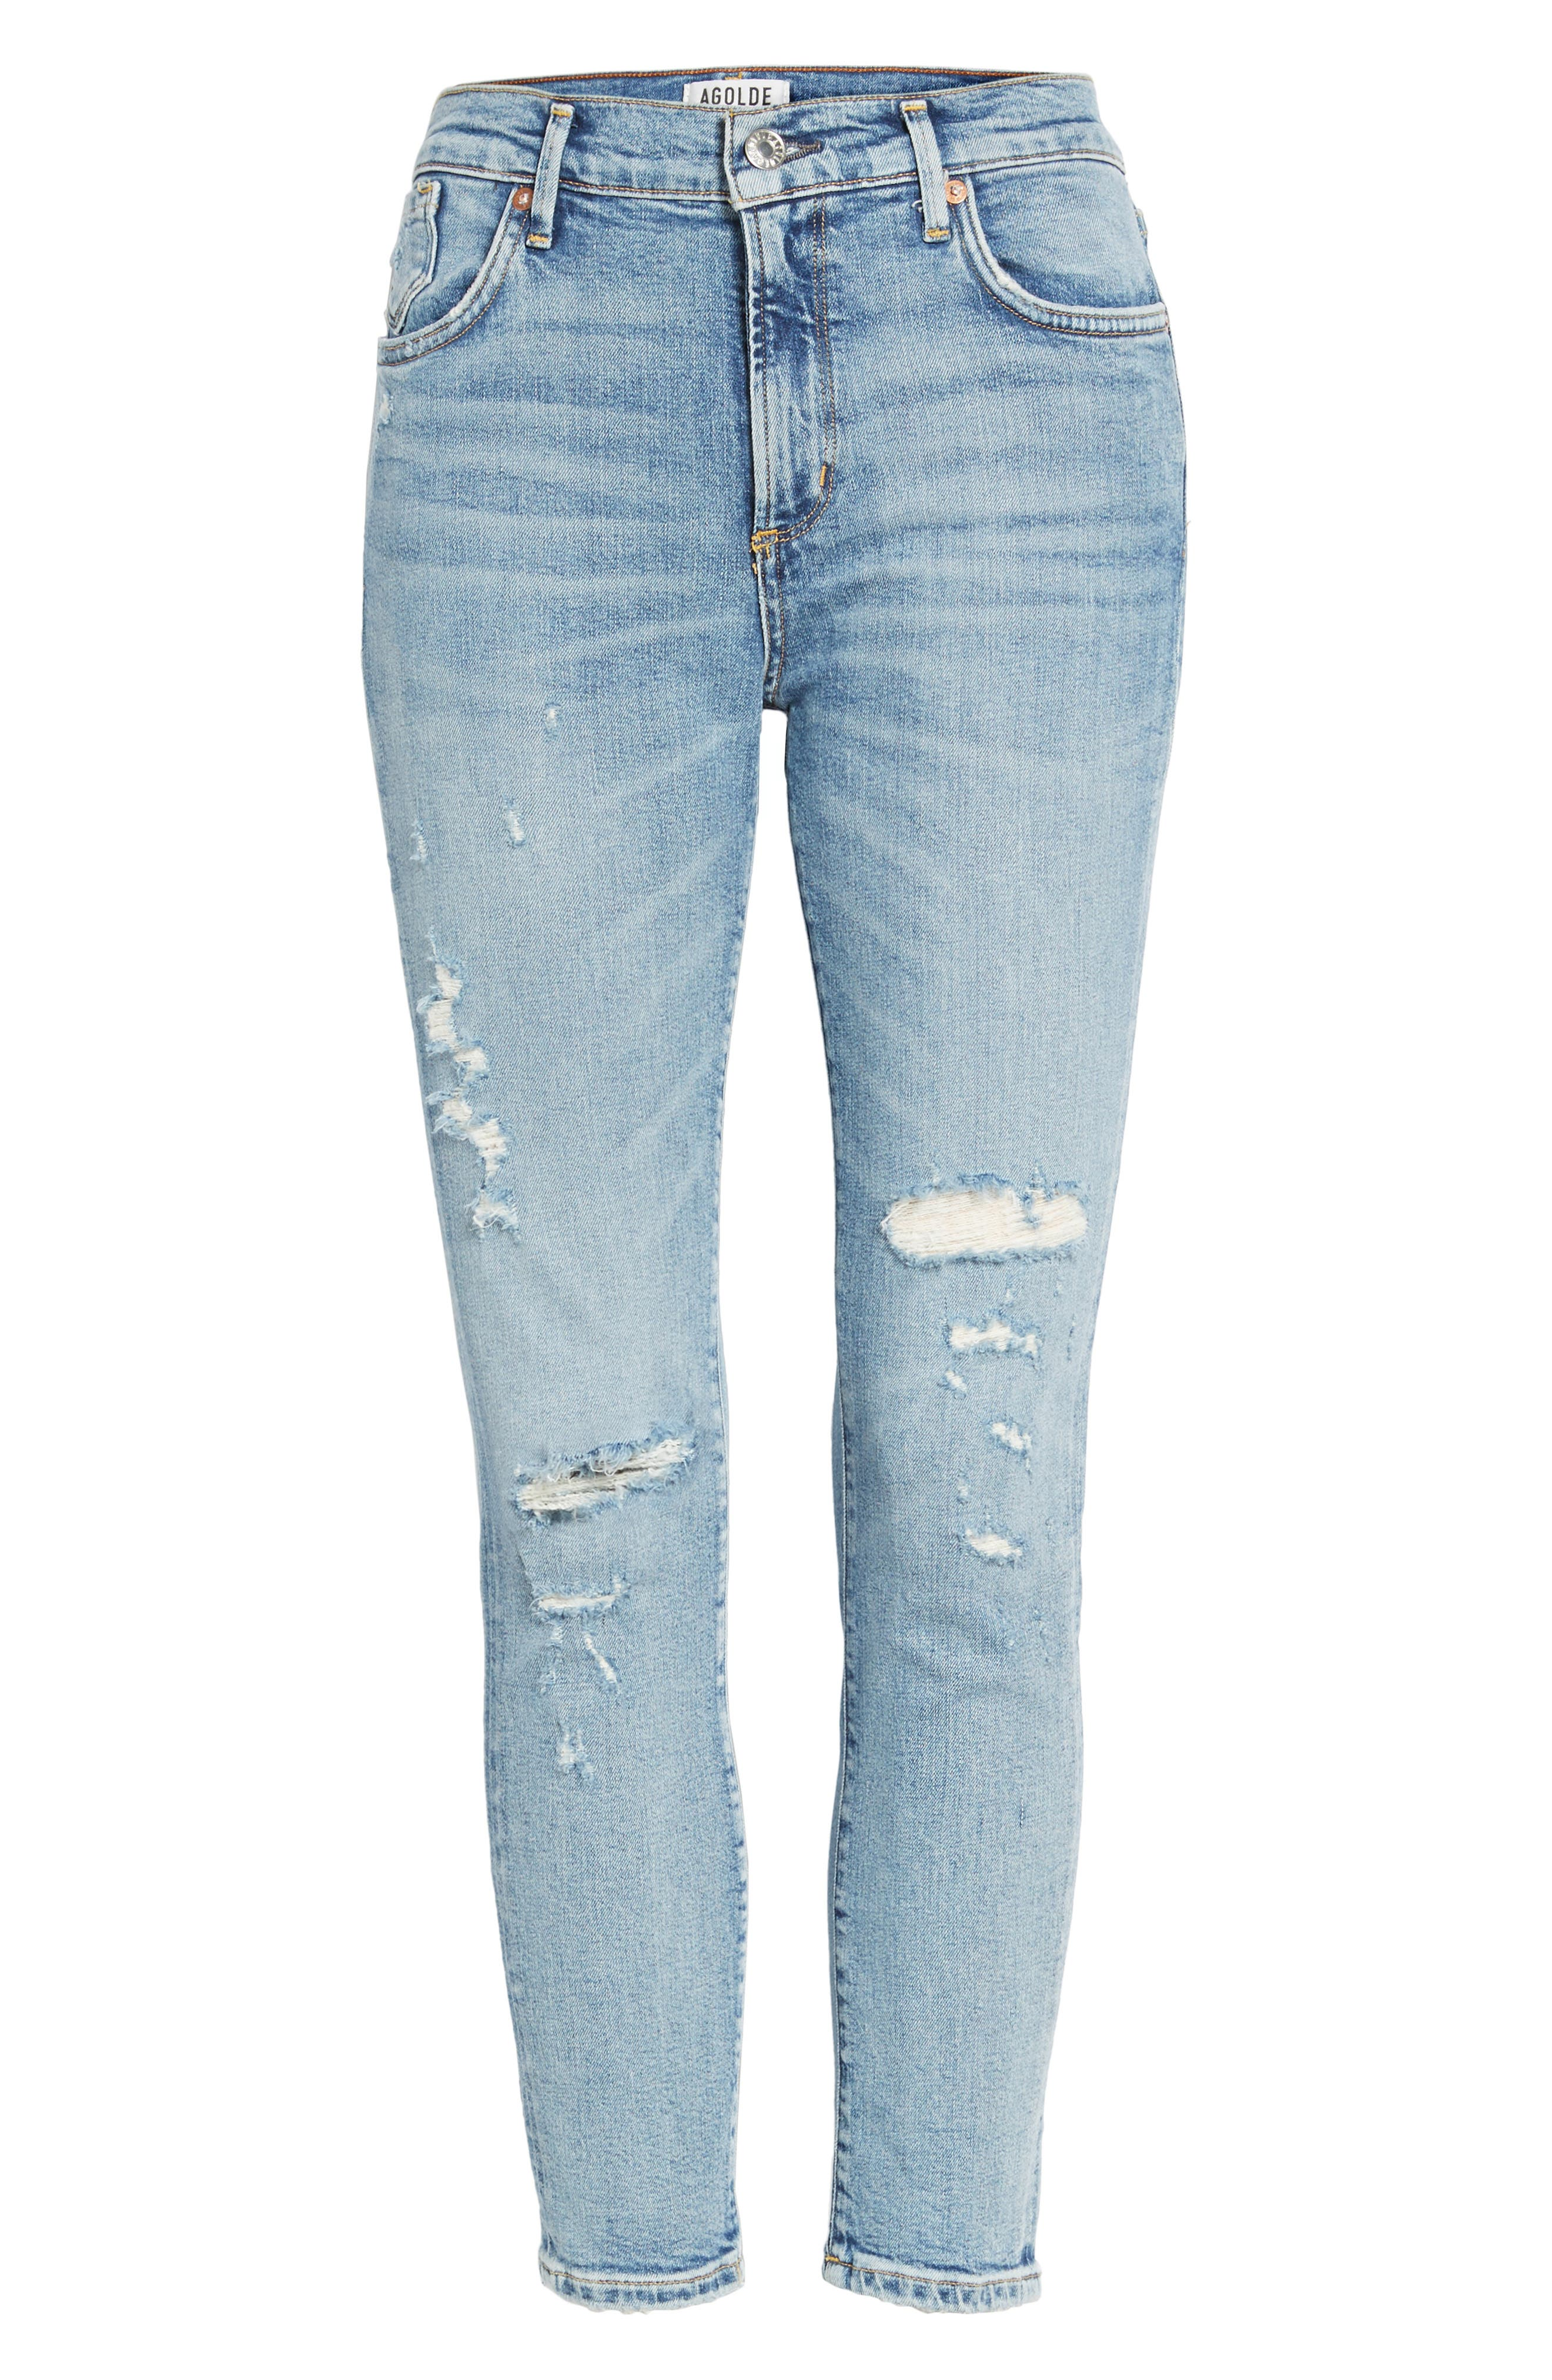 Sophie Distressed High Waist Skinny Jeans,                             Alternate thumbnail 6, color,                             OUTSIDER